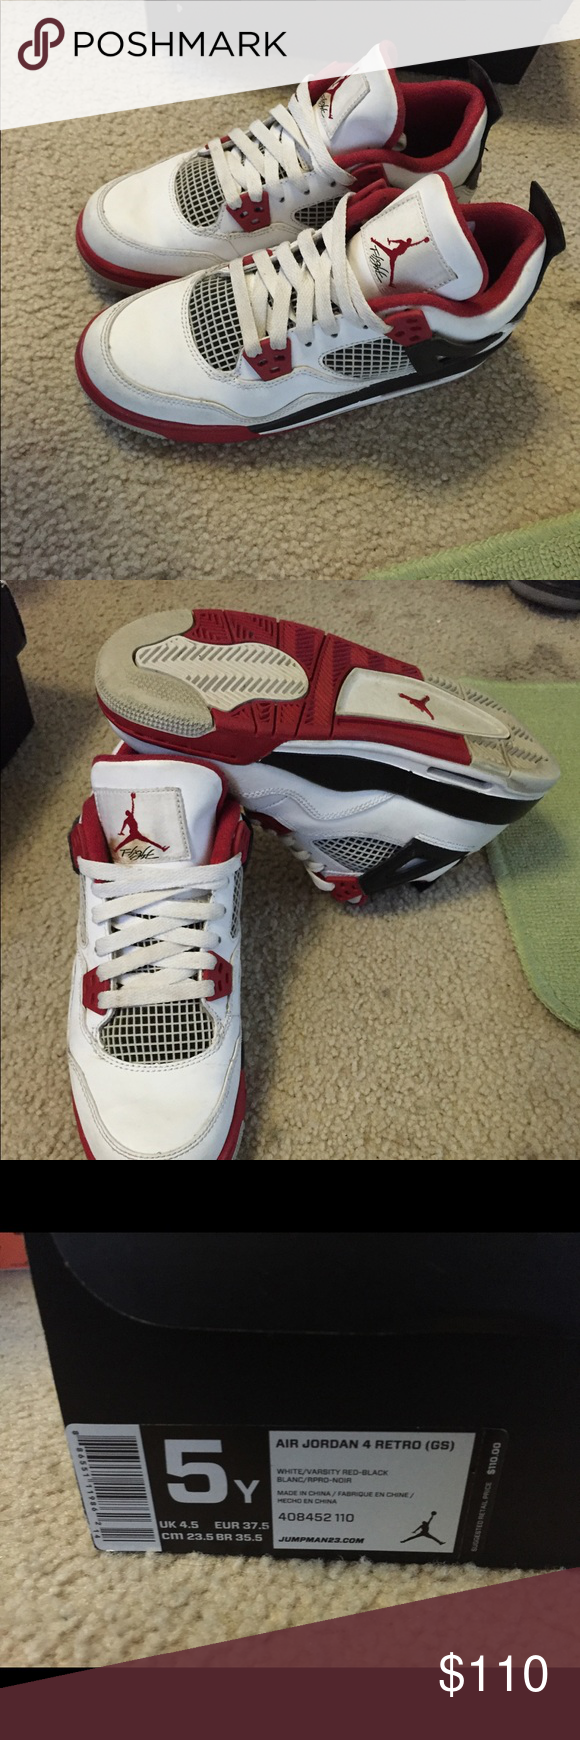 9b560c85c4fc Jordan fire red retro 5s Like new Jordan retro fire red 5s. Size 5.5 boys  and worn a few times. Air Jordan Shoes Sneakers